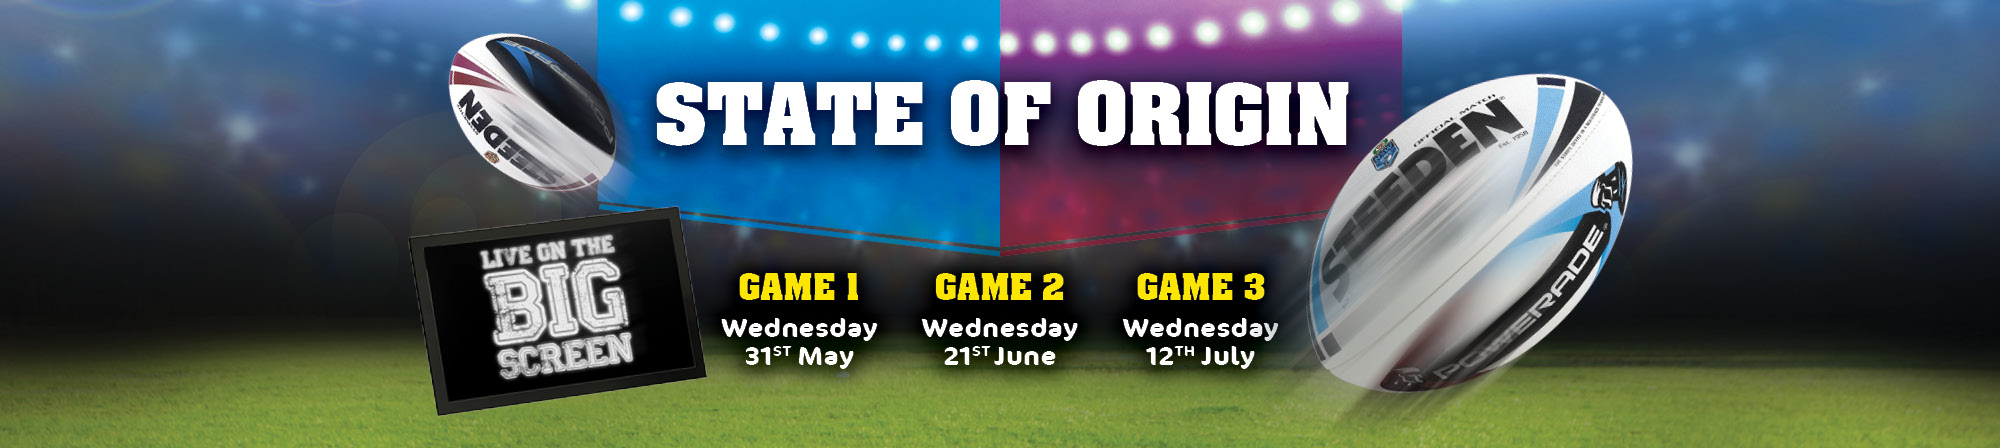 NRL-State-of-Origin-2017-Slide-2000x448